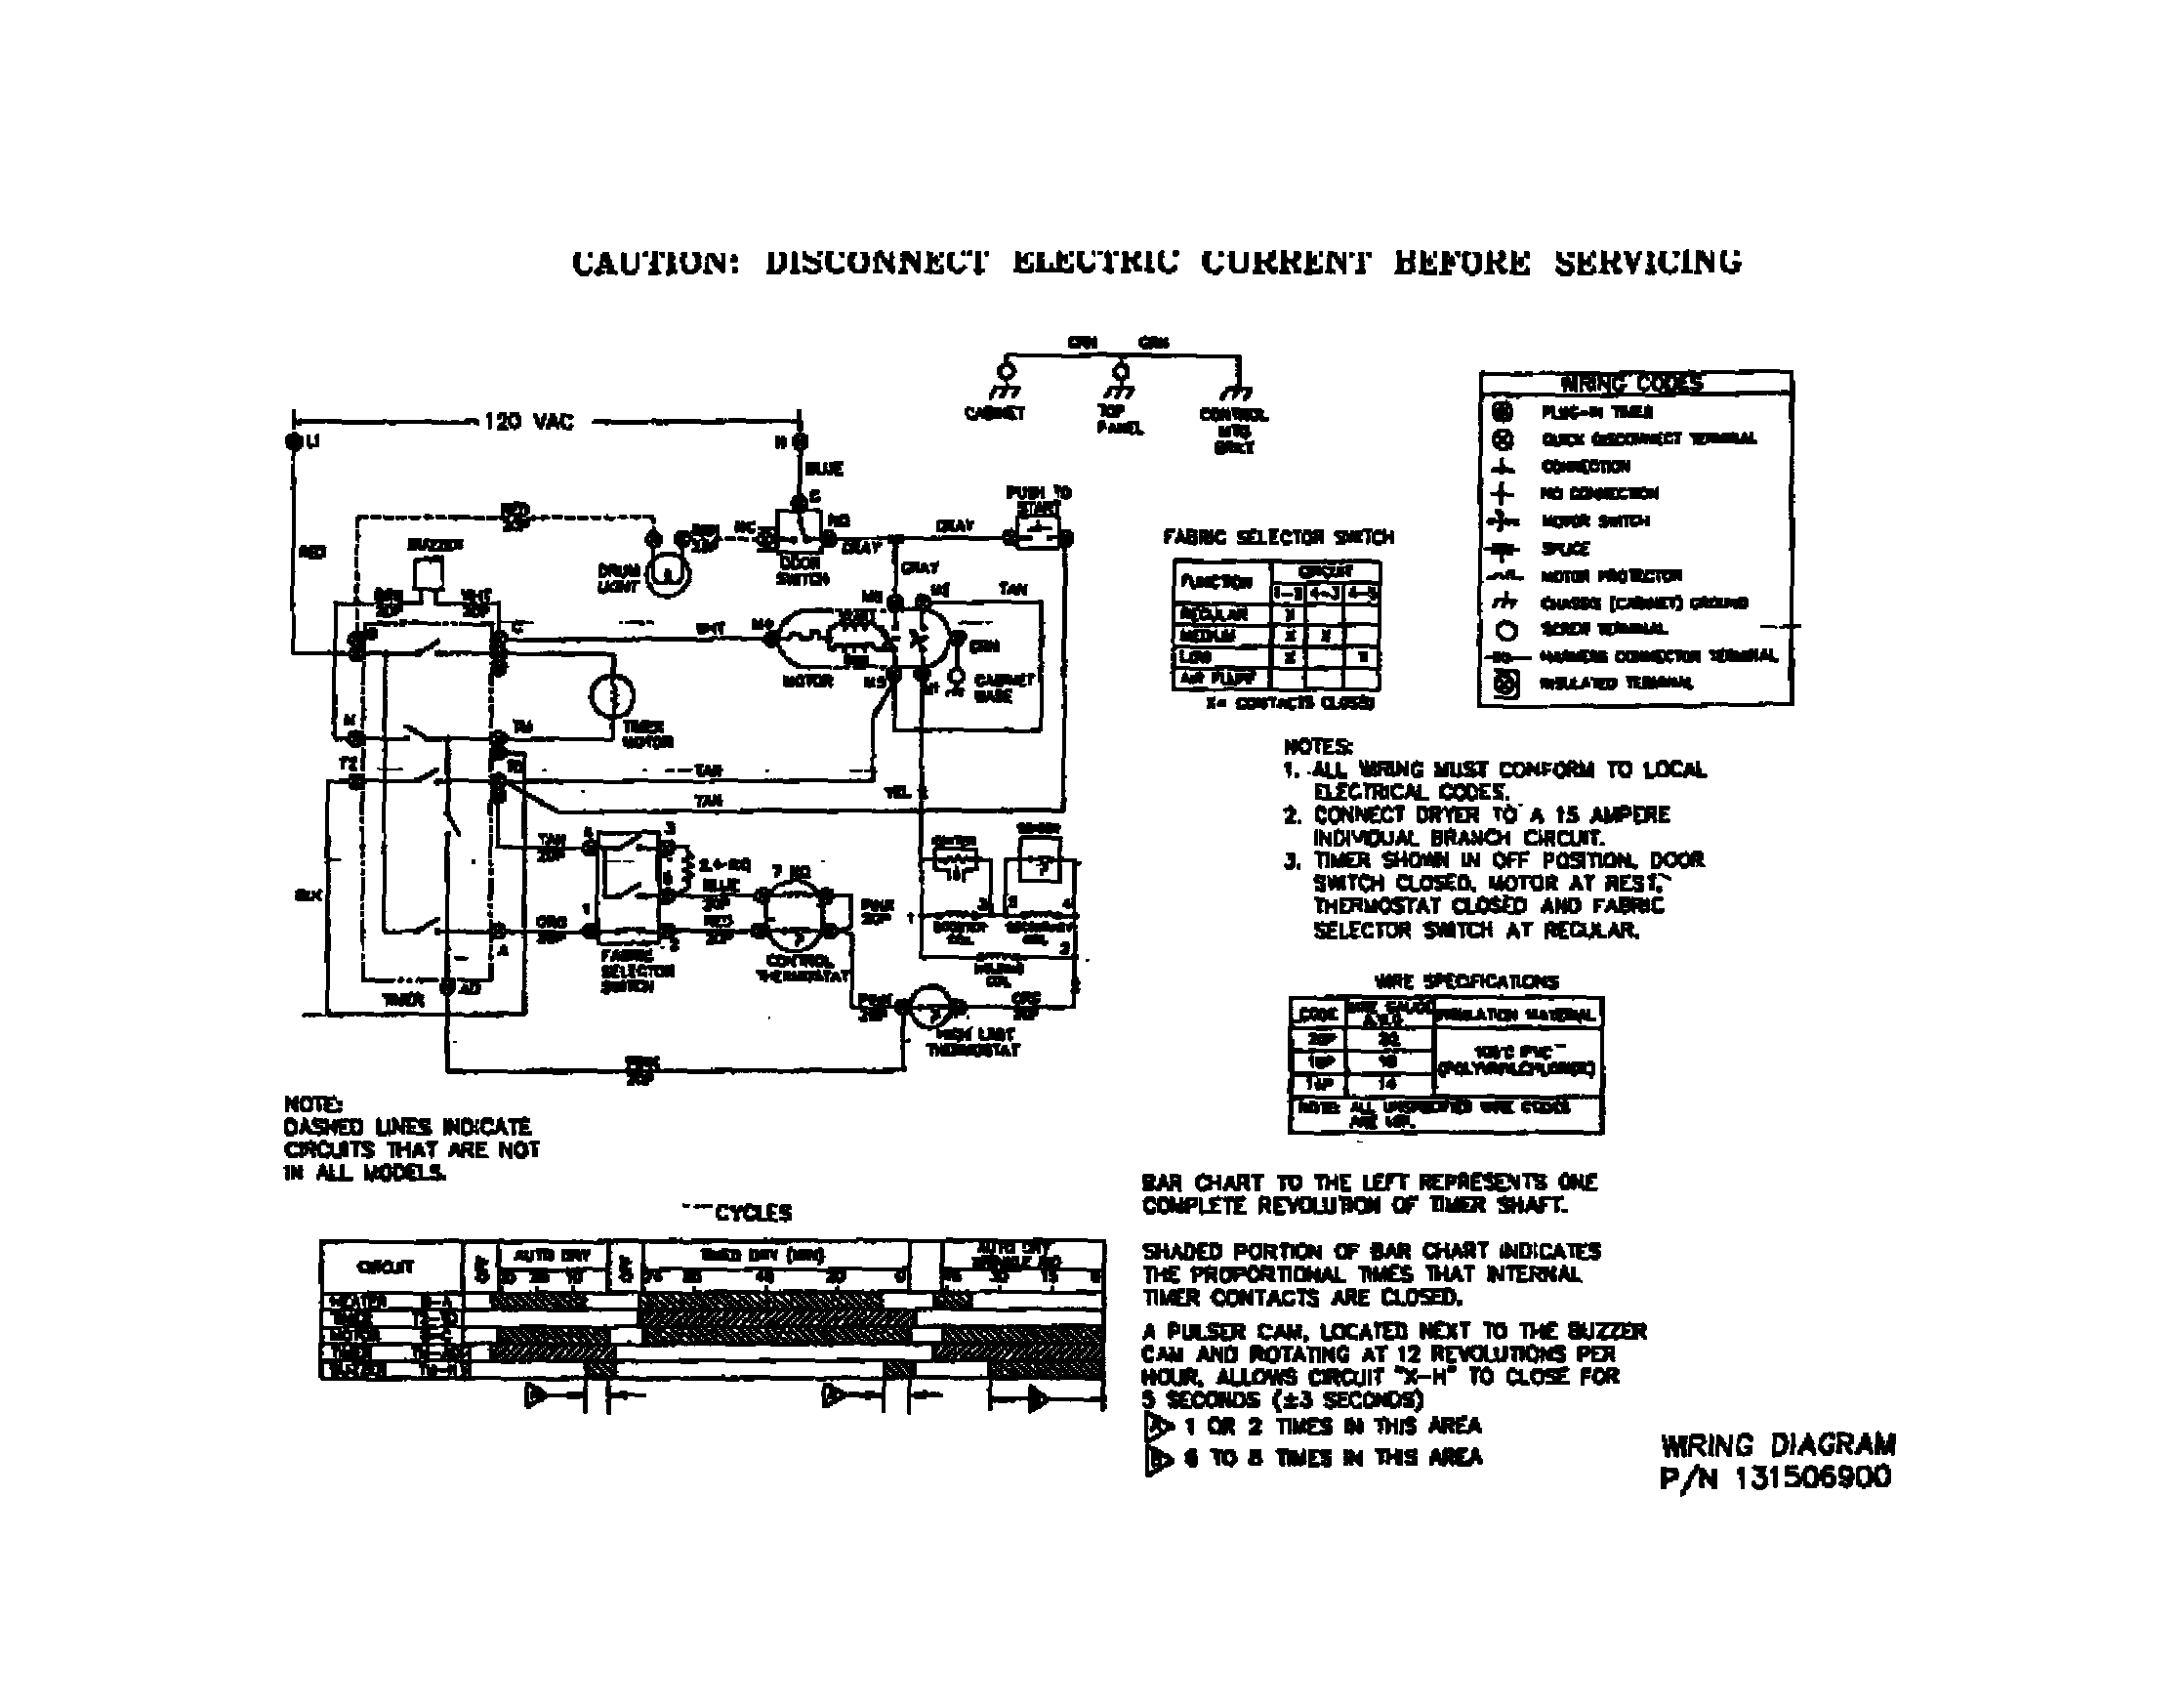 WIRING DIAGRAM Diagram & Parts List for Model WDG336RBD2